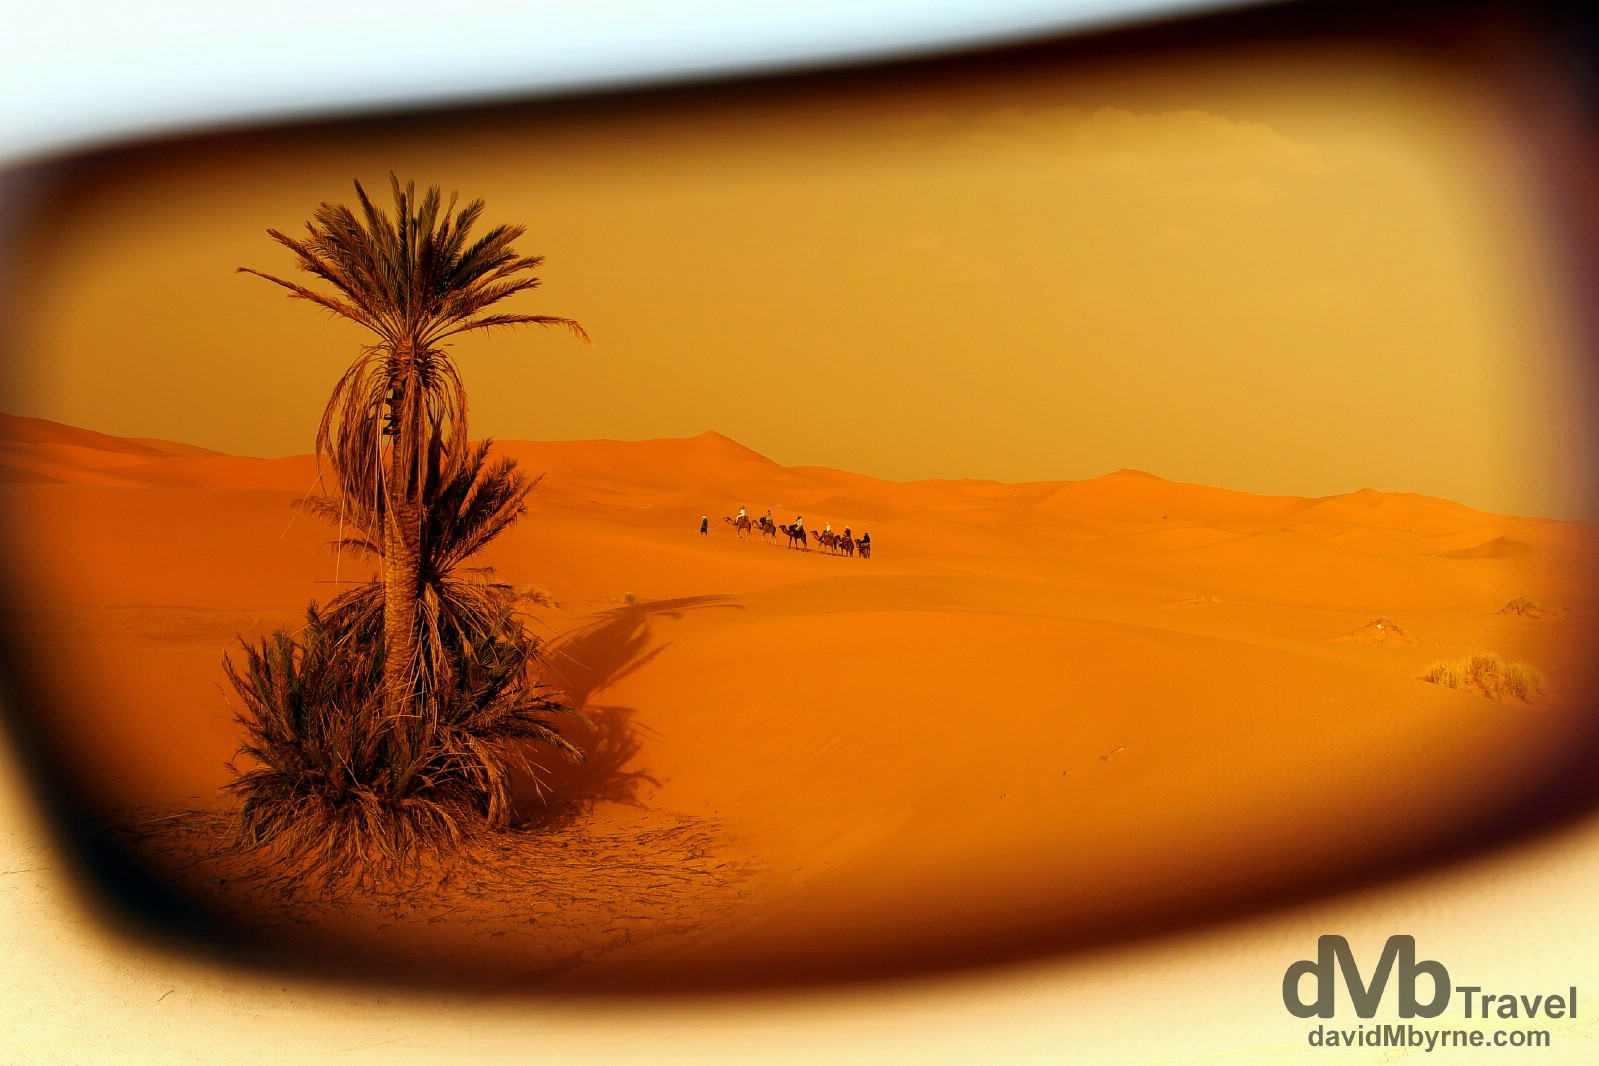 As seen through sunglasses, a camel train on the Erg Chebbi sand dunes near the village of Merzouga, Morocco. May 19th, 2014.